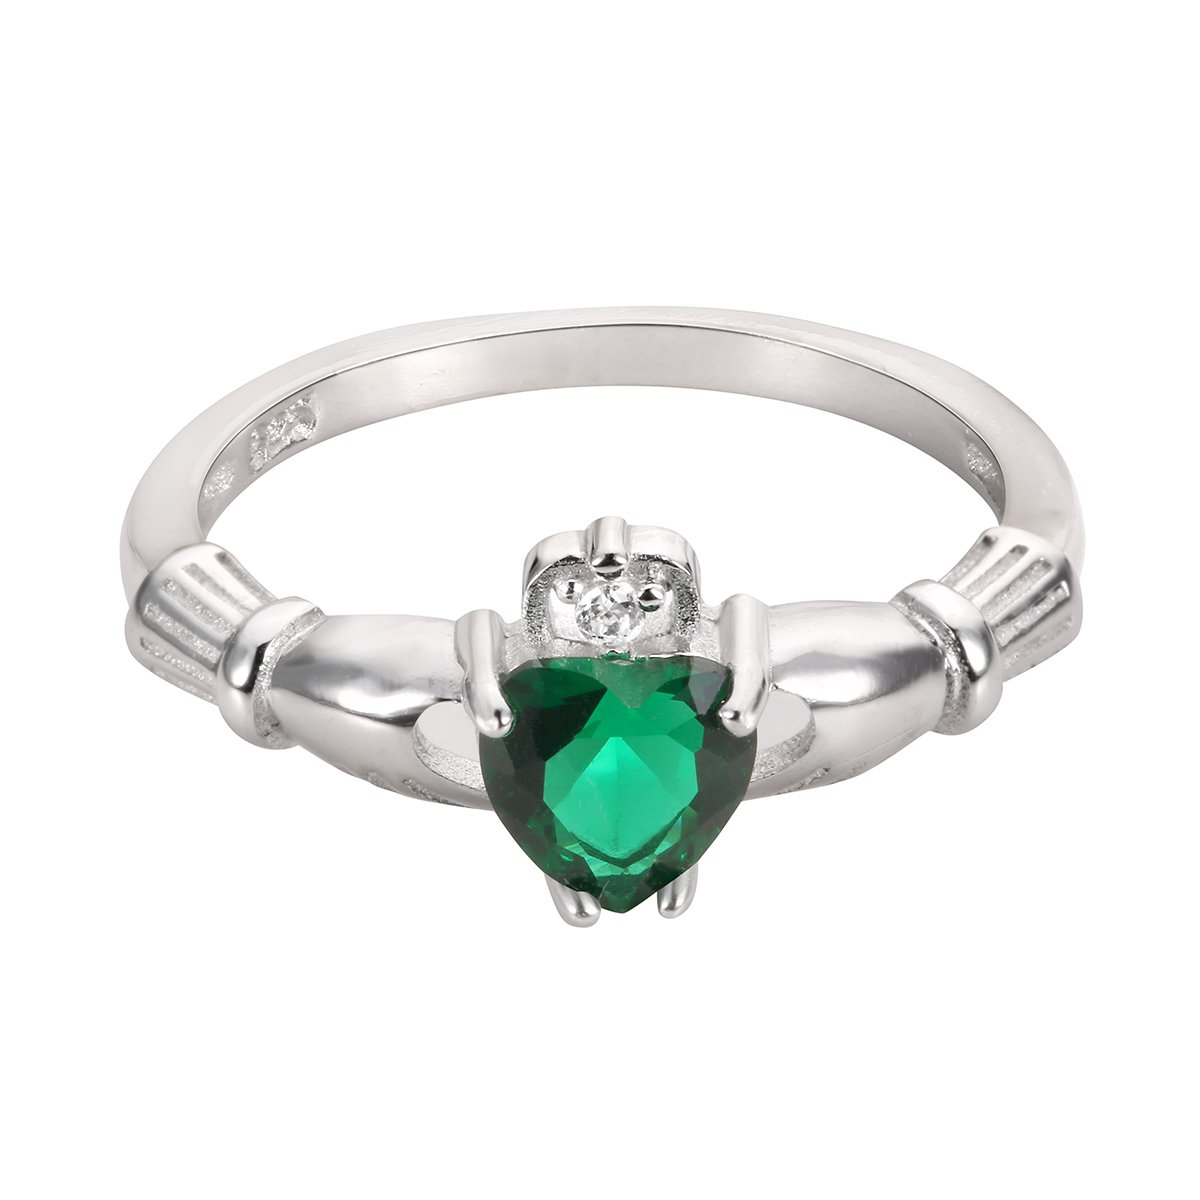 CloseoutWarehouse Simulated Emerald Cubic Zirconia Claddagh Benediction Ring Sterling Silver Size 4 by CloseoutWarehouse (Image #1)